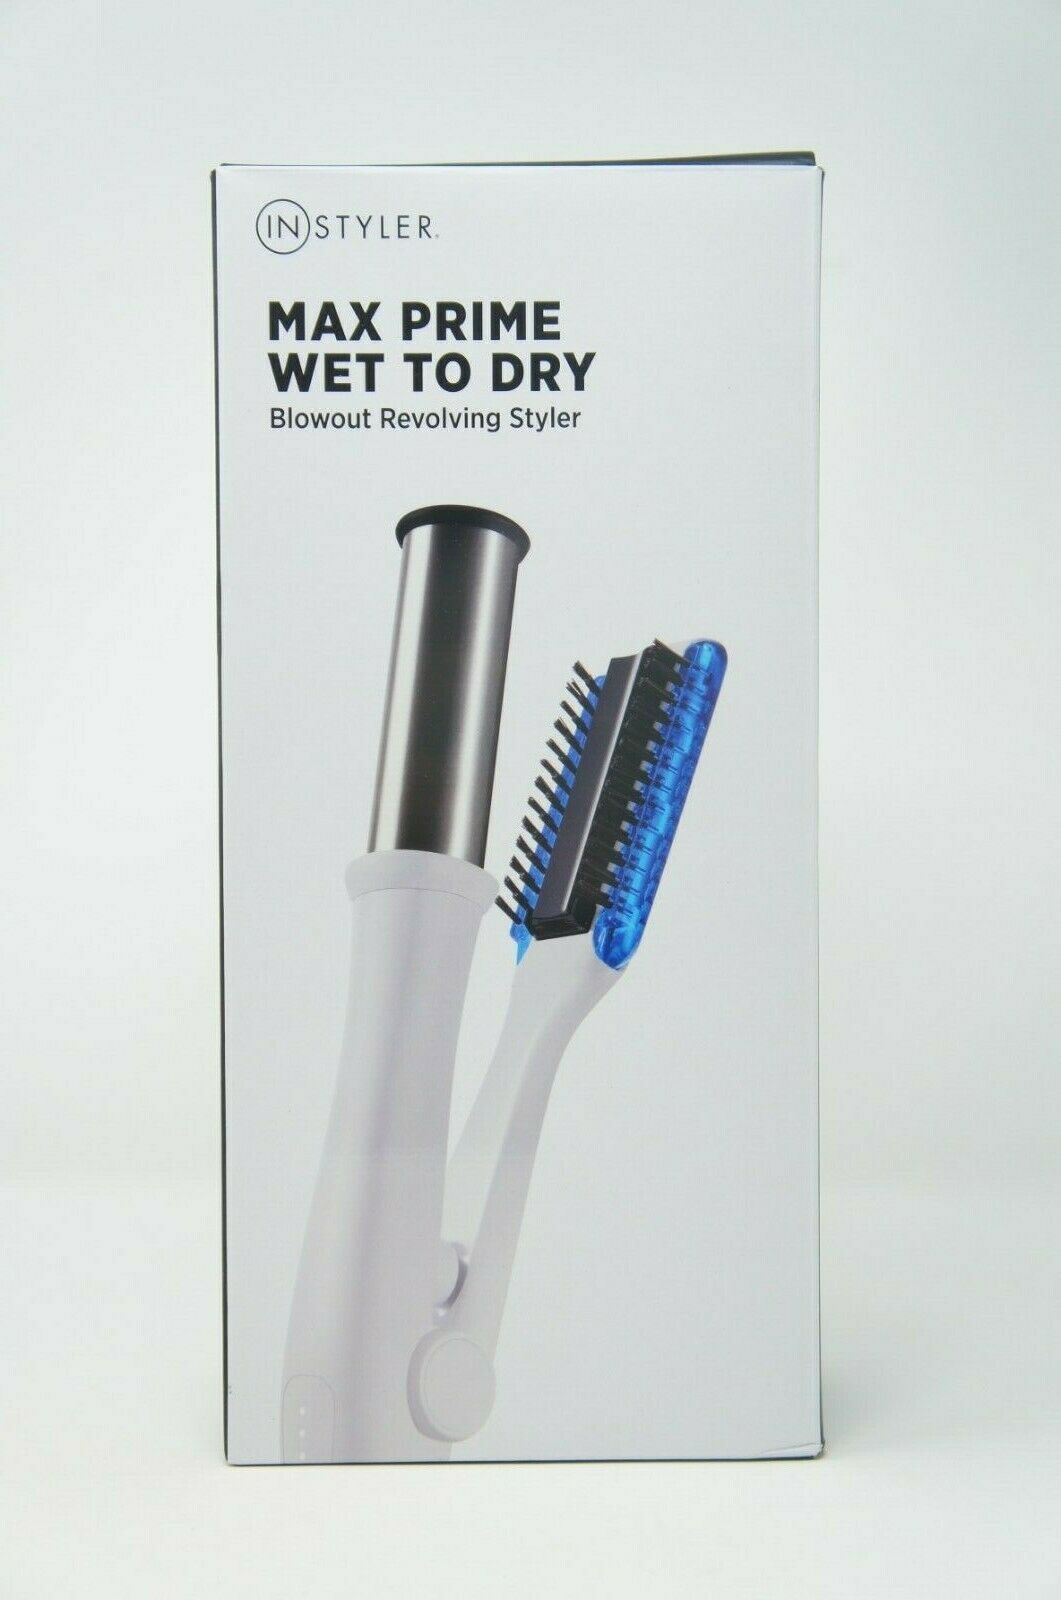 InStyler 00680 MAX PRIME WET TO DRY 1.25'' 2-Way Rotating Styling Iron